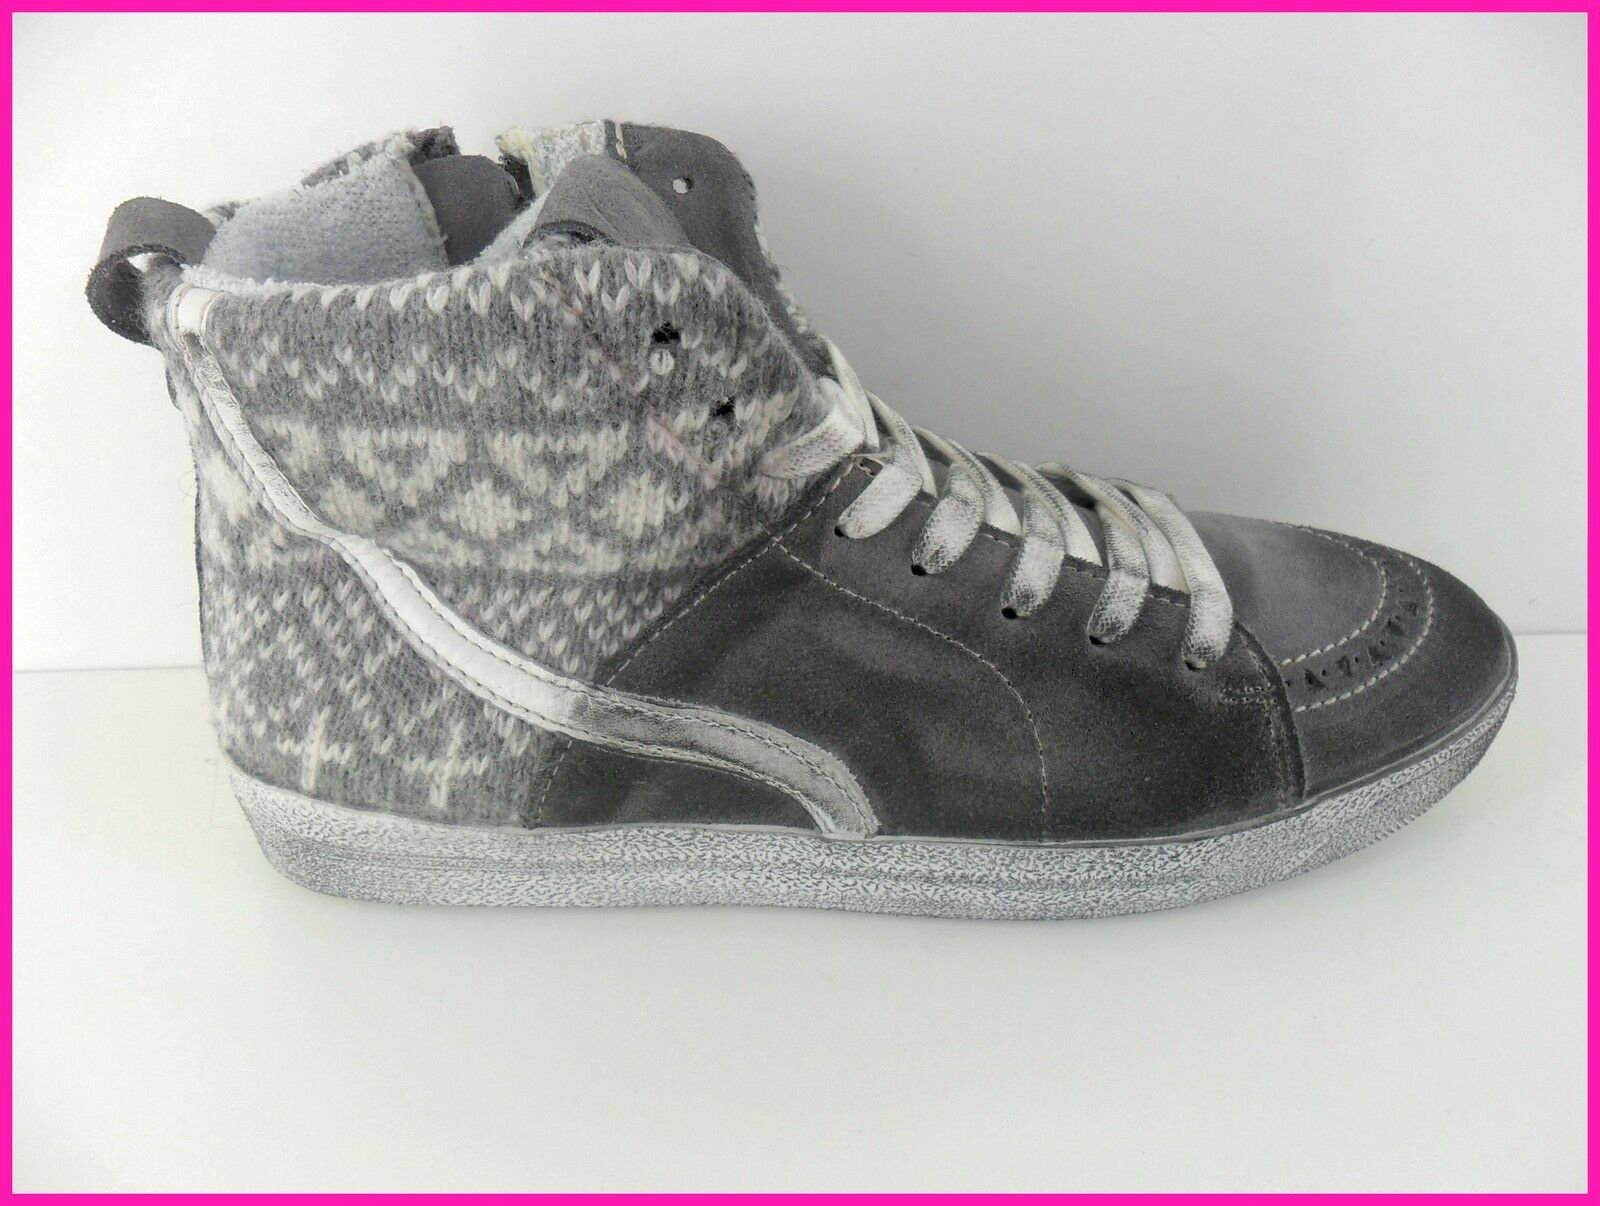 SCONTO 50 % SNEAKERS KEEP  WINTER Damens ANTRACITE ART 26510 N° 37